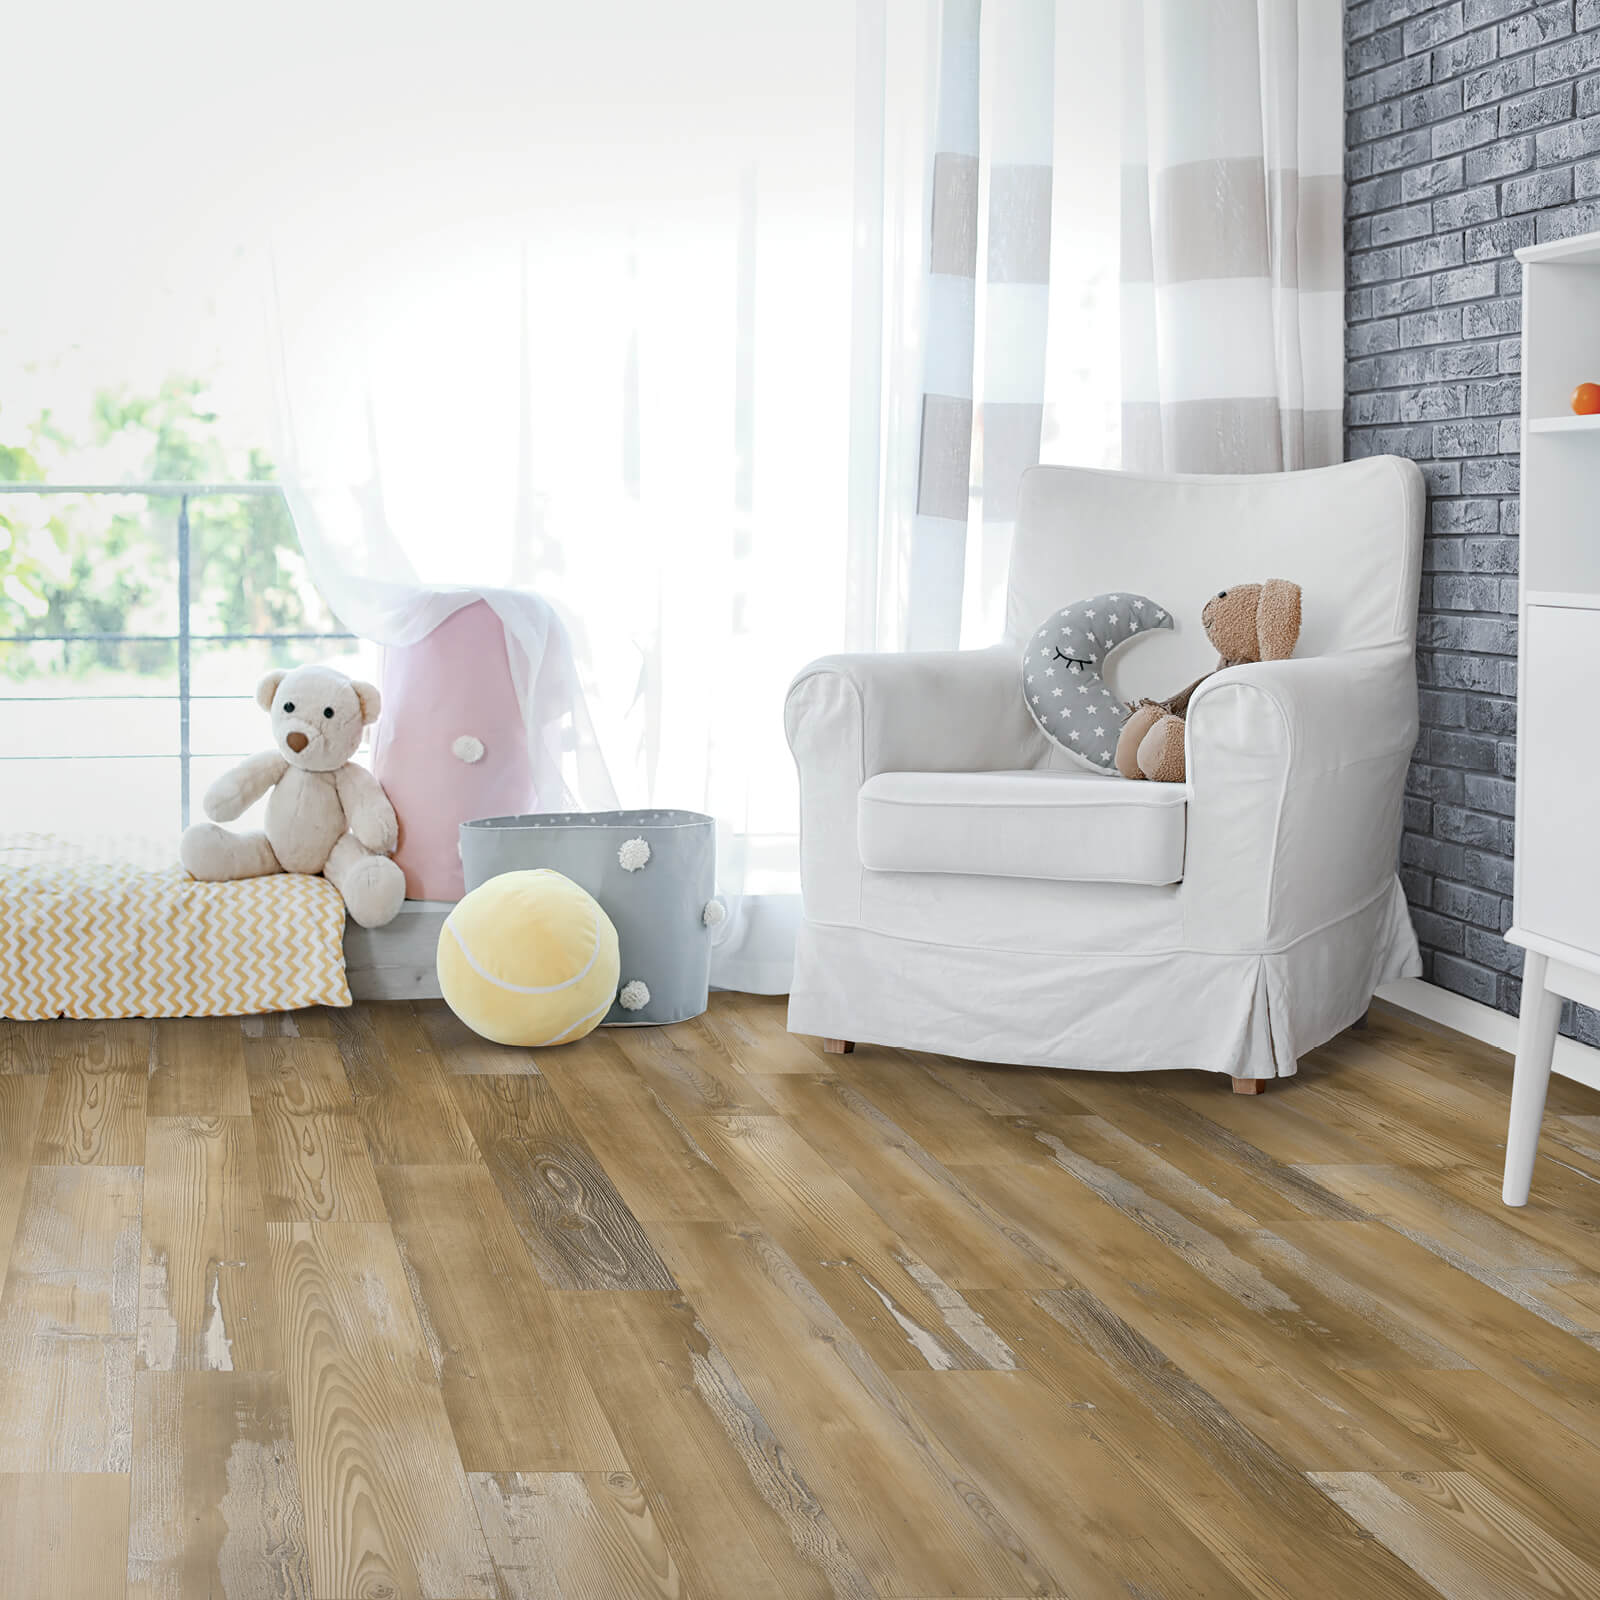 Kids room flooring | Great Floors